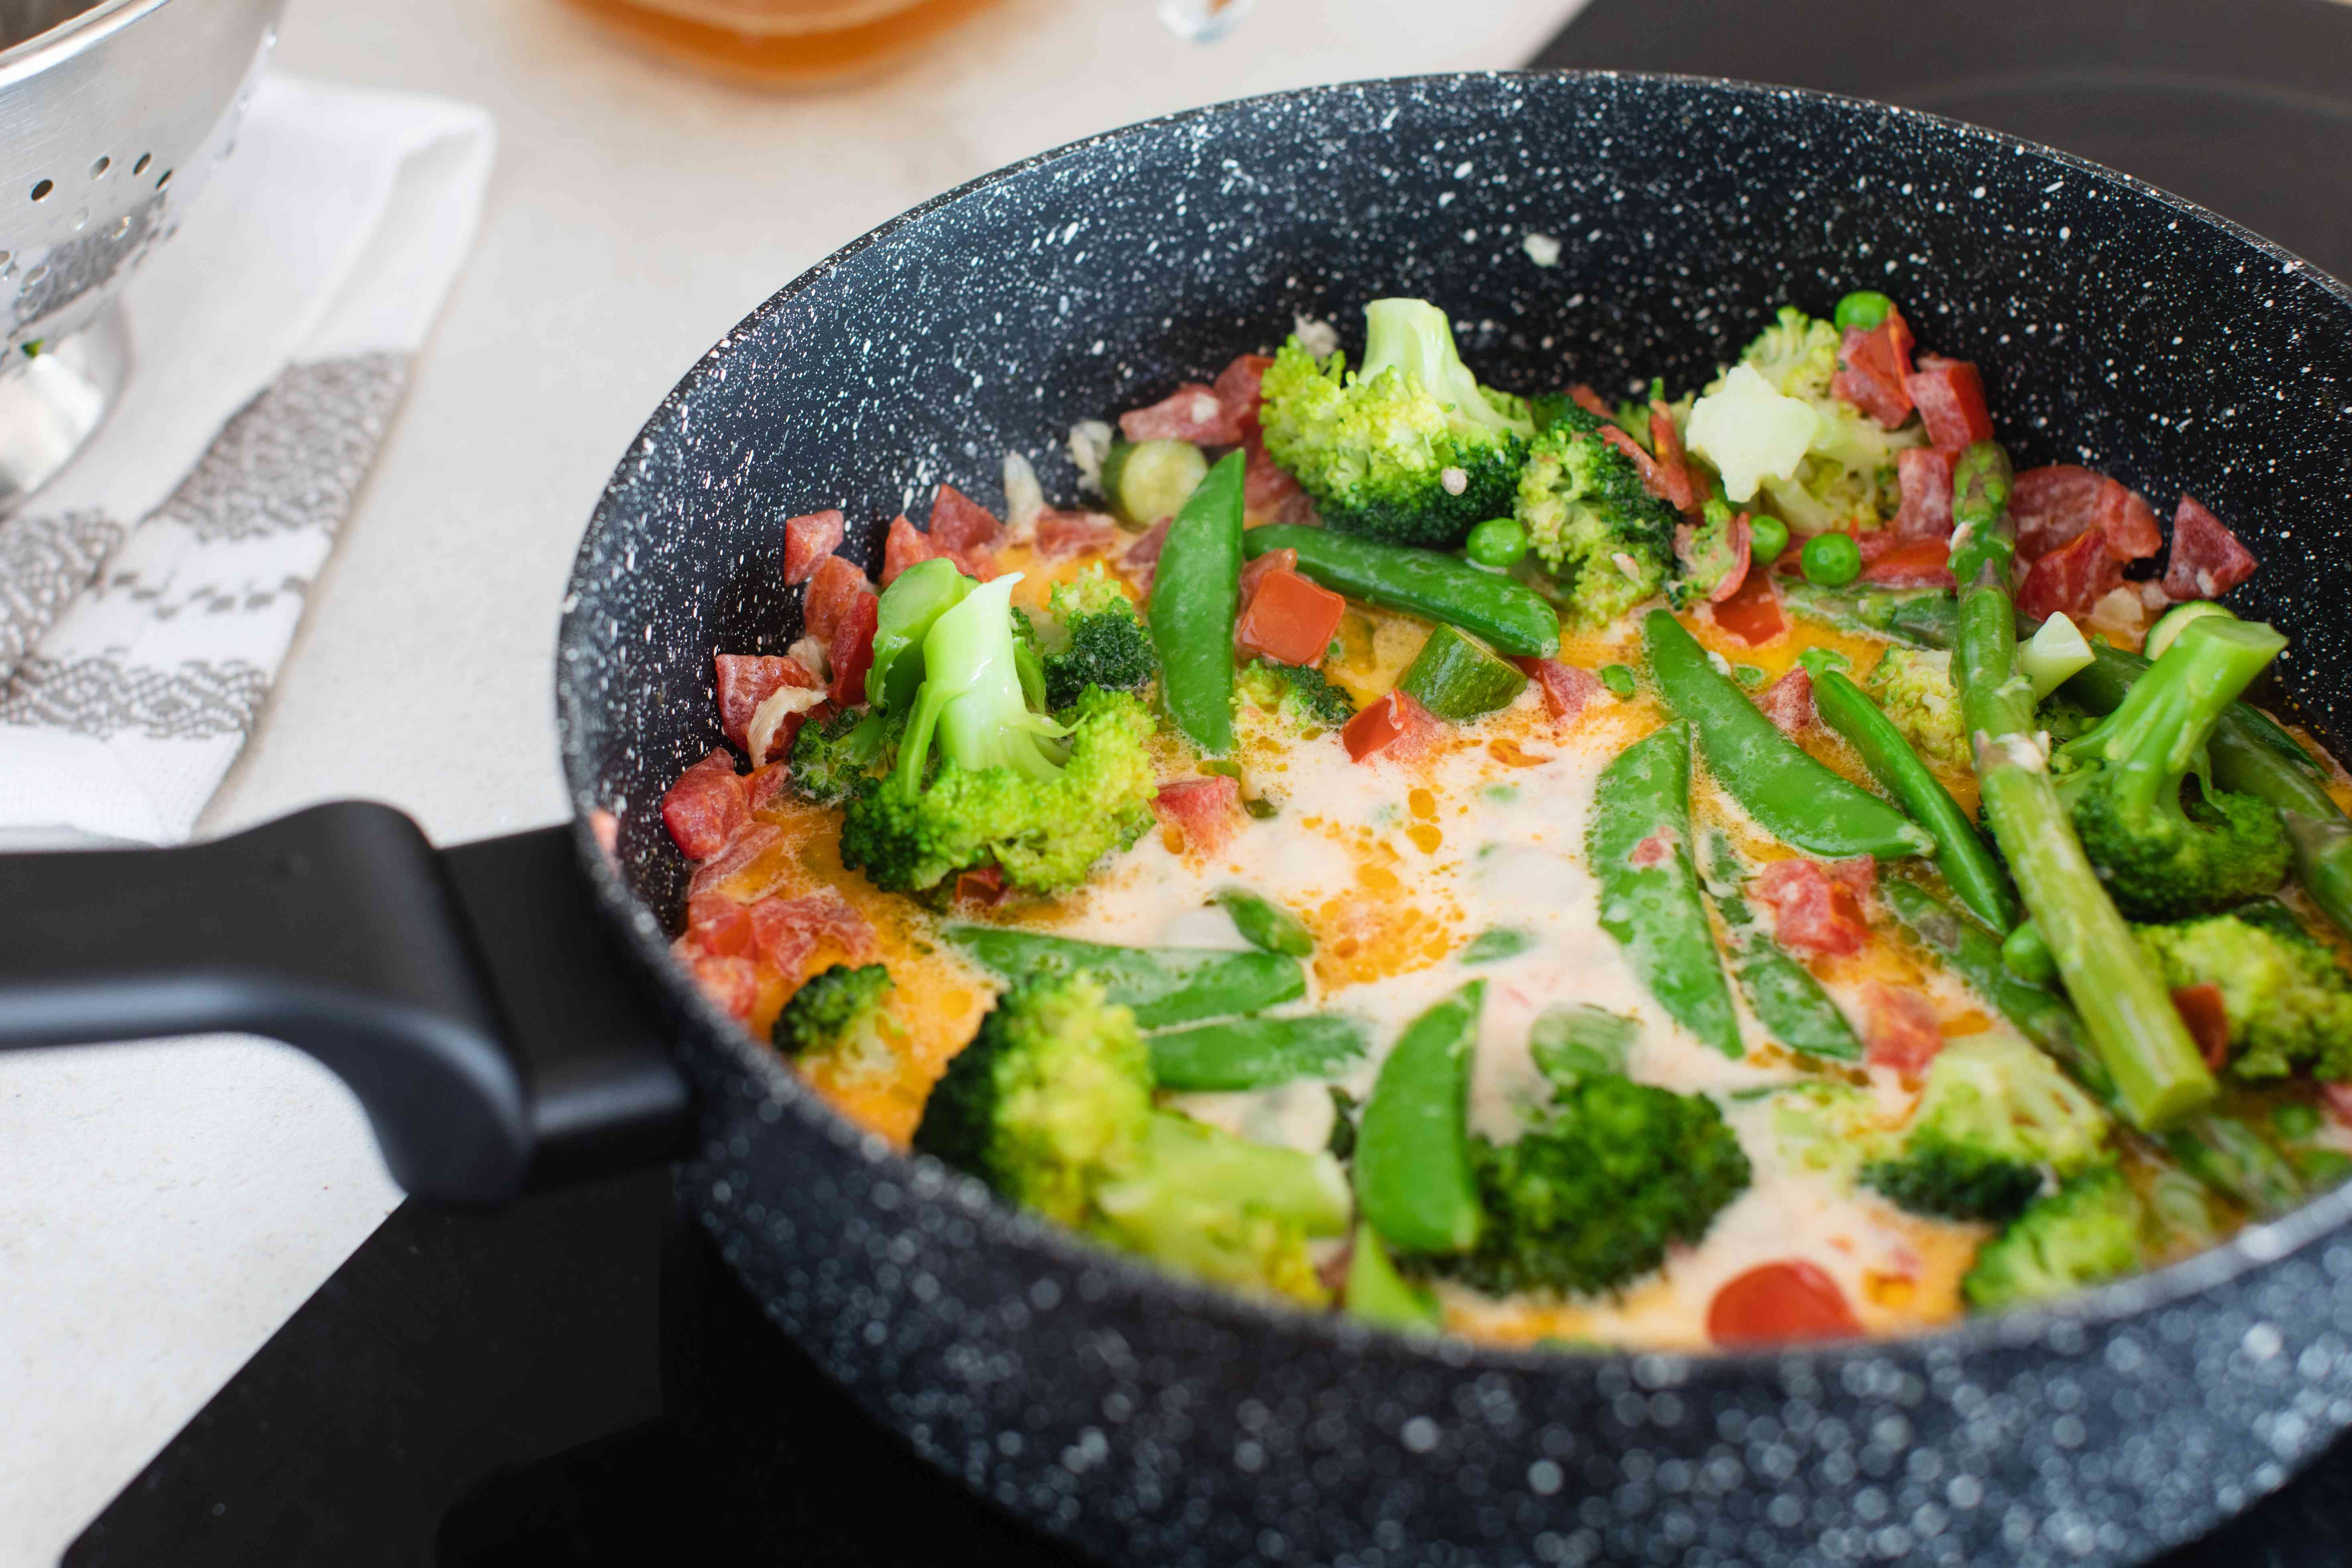 A skillet with the vegetables and primavera sauce inside.